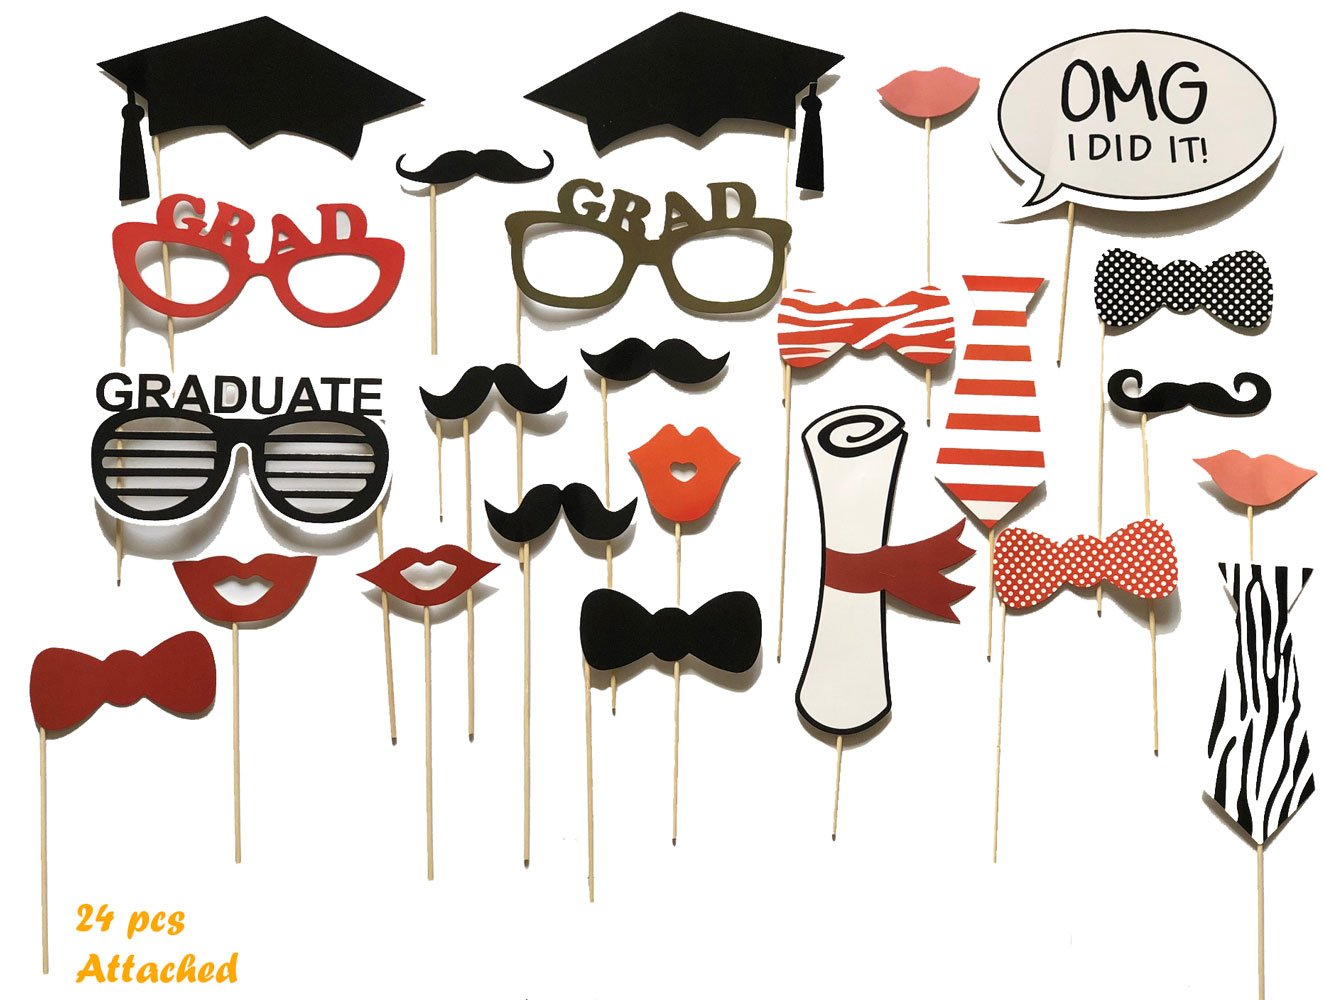 Graduation Party Photo Booth Props, Graduation Party Decorations, Attached to the Stick, NO DIY REQUIRED, only by USA-SALES Seller